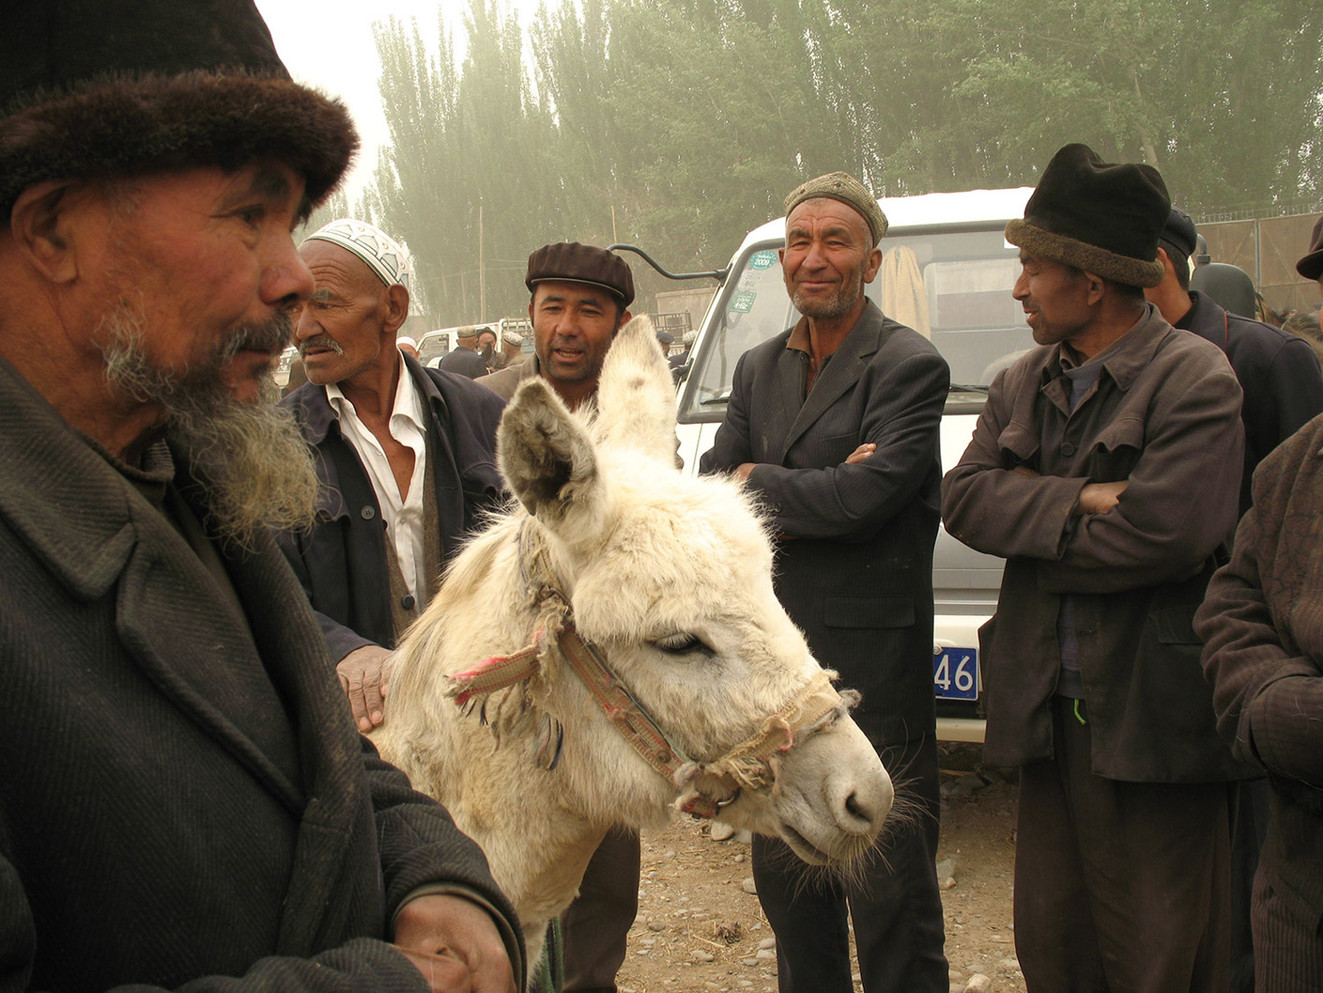 For Sale at the Kashgar Markets